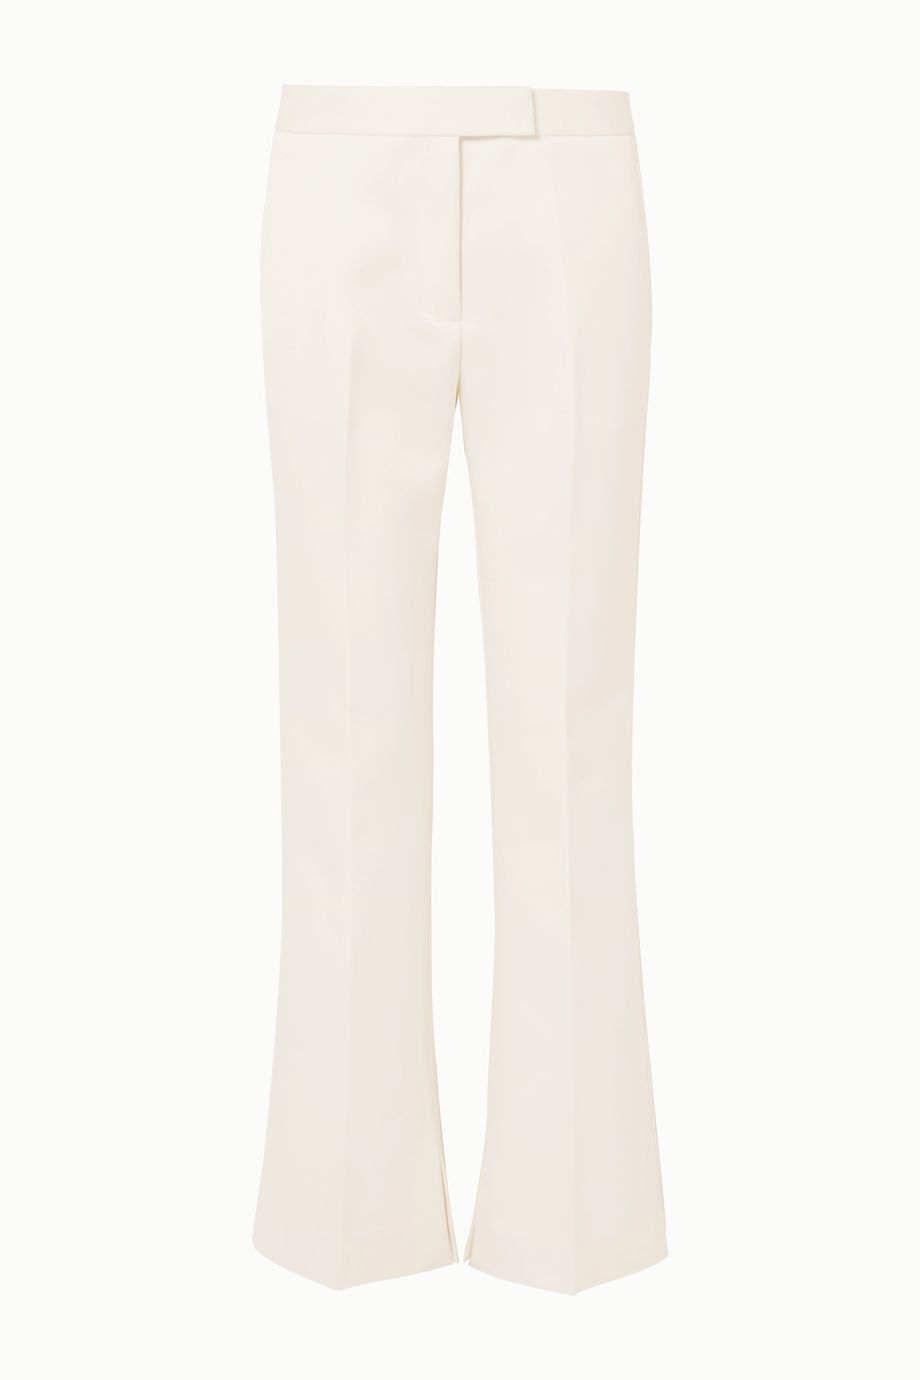 3.1 Phillip Lim Twill straight-leg pants